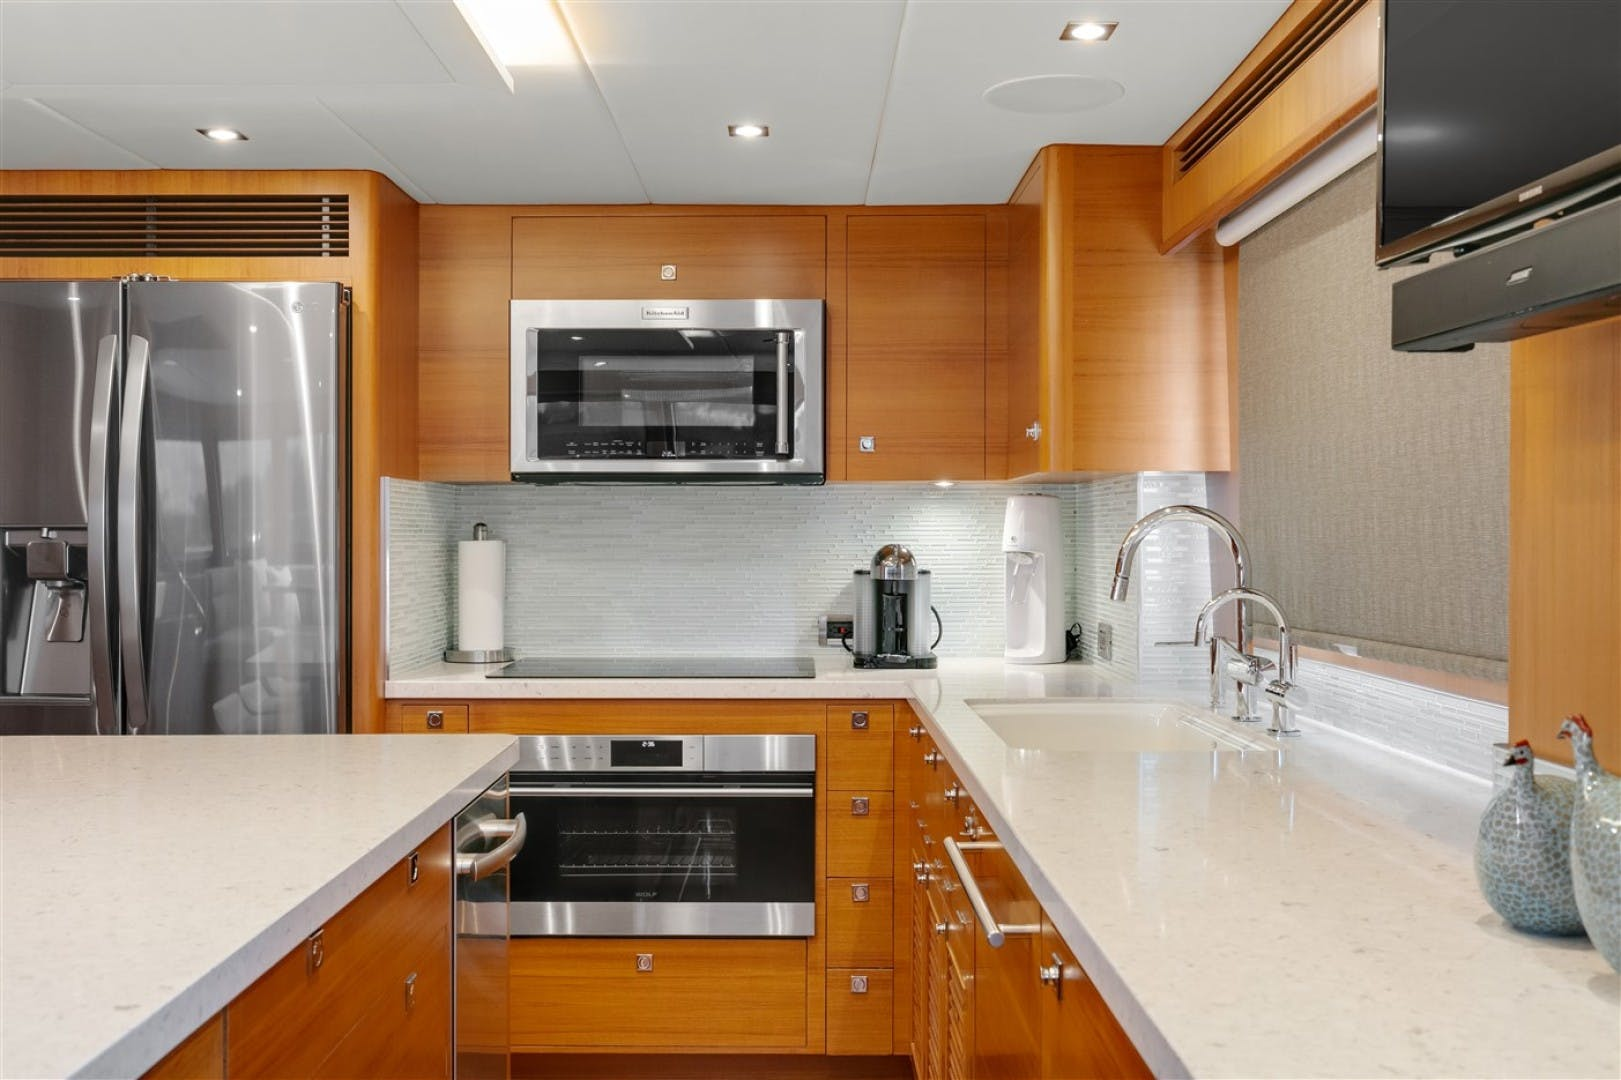 2018 Outer Reef Yachts 86' 860 Deluxbridge Skylounge RUFF SEAS | Picture 8 of 55